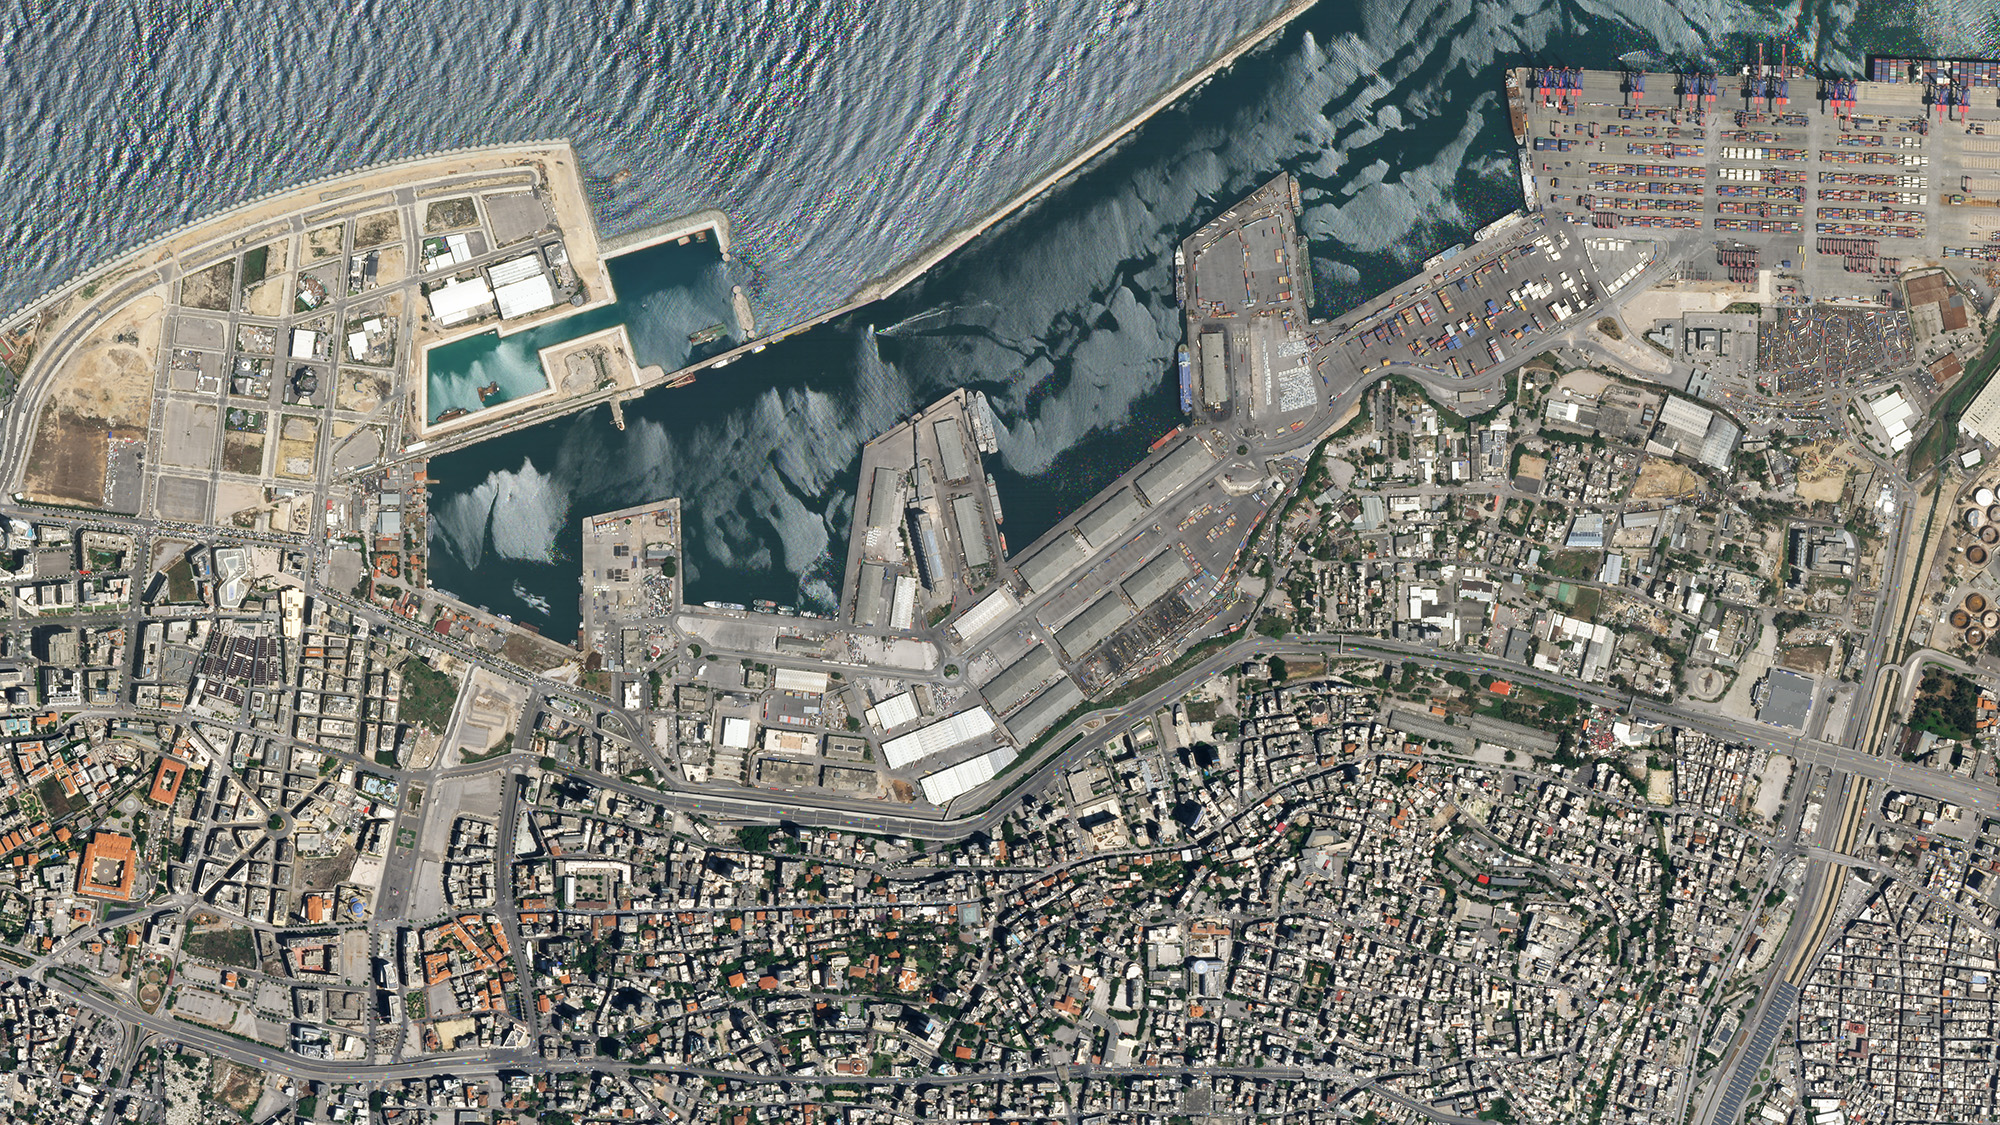 SkySat imagery of Beirut, Lebanon on May 31, 2020 © 2020, Planet Labs Inc. All Rights Reserved.